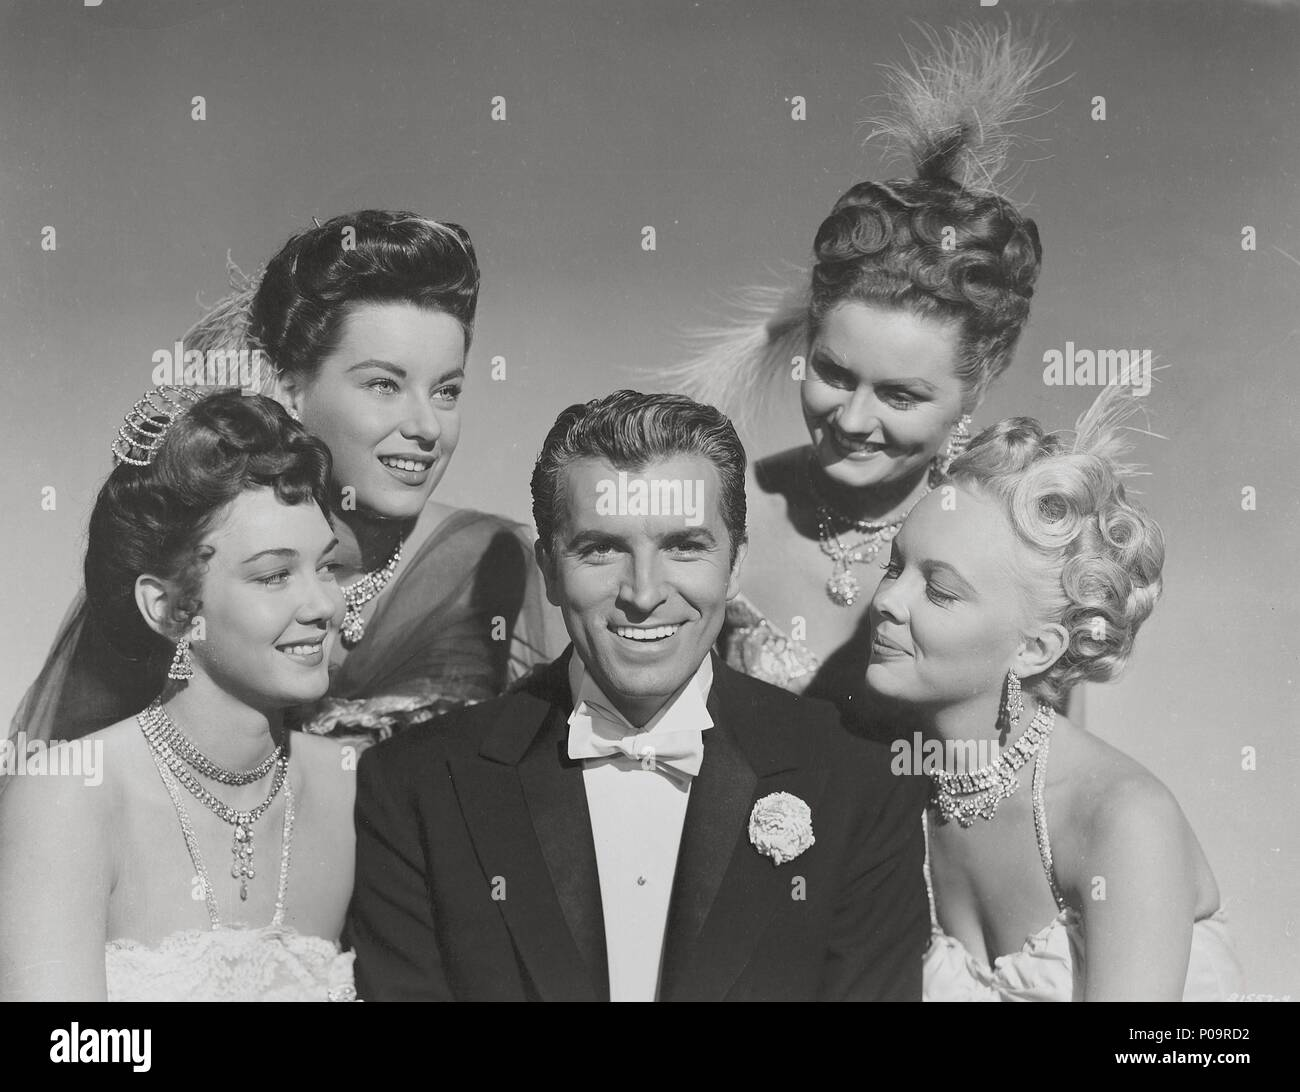 Original Film Title: THE MERRY WIDOW.  English Title: THE MERRY WIDOW.  Film Director: CURTIS BERNHARDT.  Year: 1952.  Stars: FERNANDO LAMAS. Credit: METRO GOLDWYN MAYER / Album - Stock Image